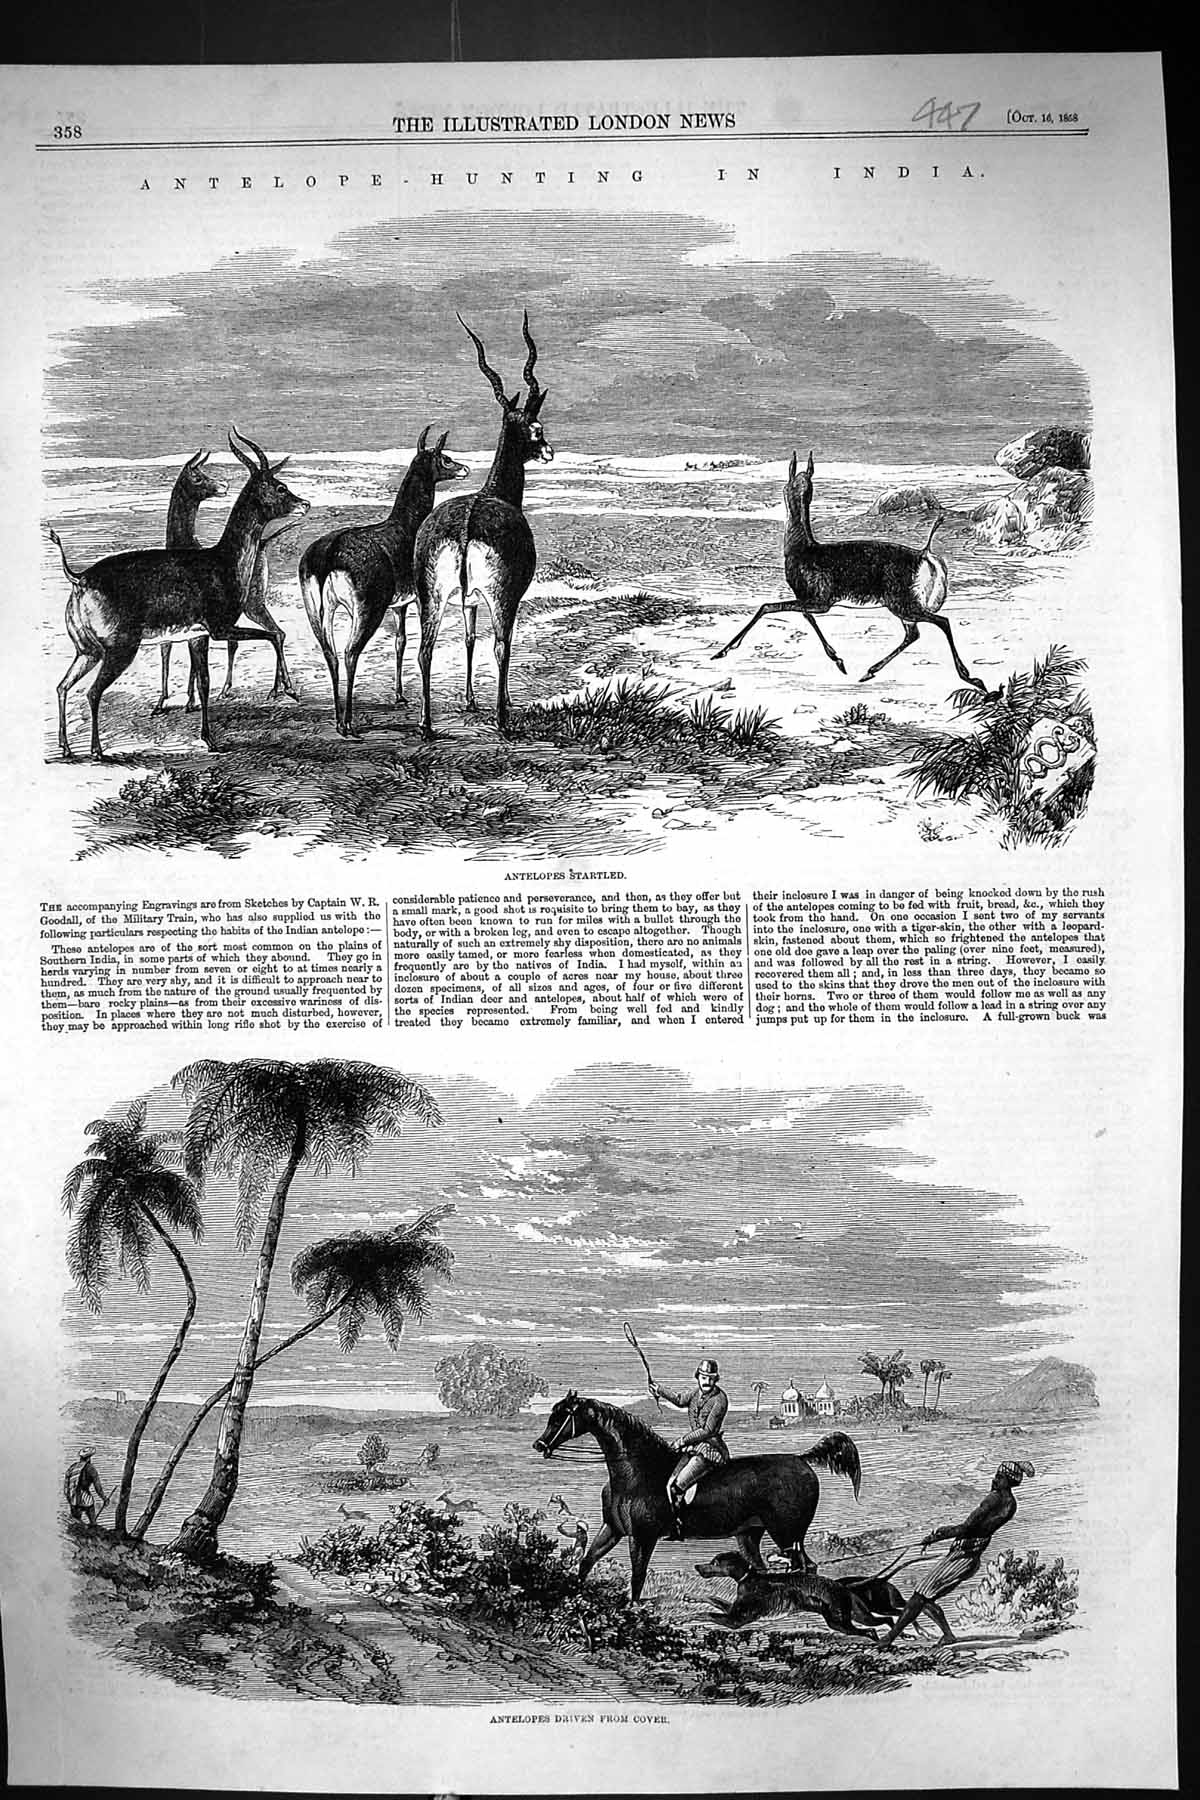 [Print 1858 Antelope Hunting India Sport Huntsmen Horses Hounds Dogs 447J305 Old Original]